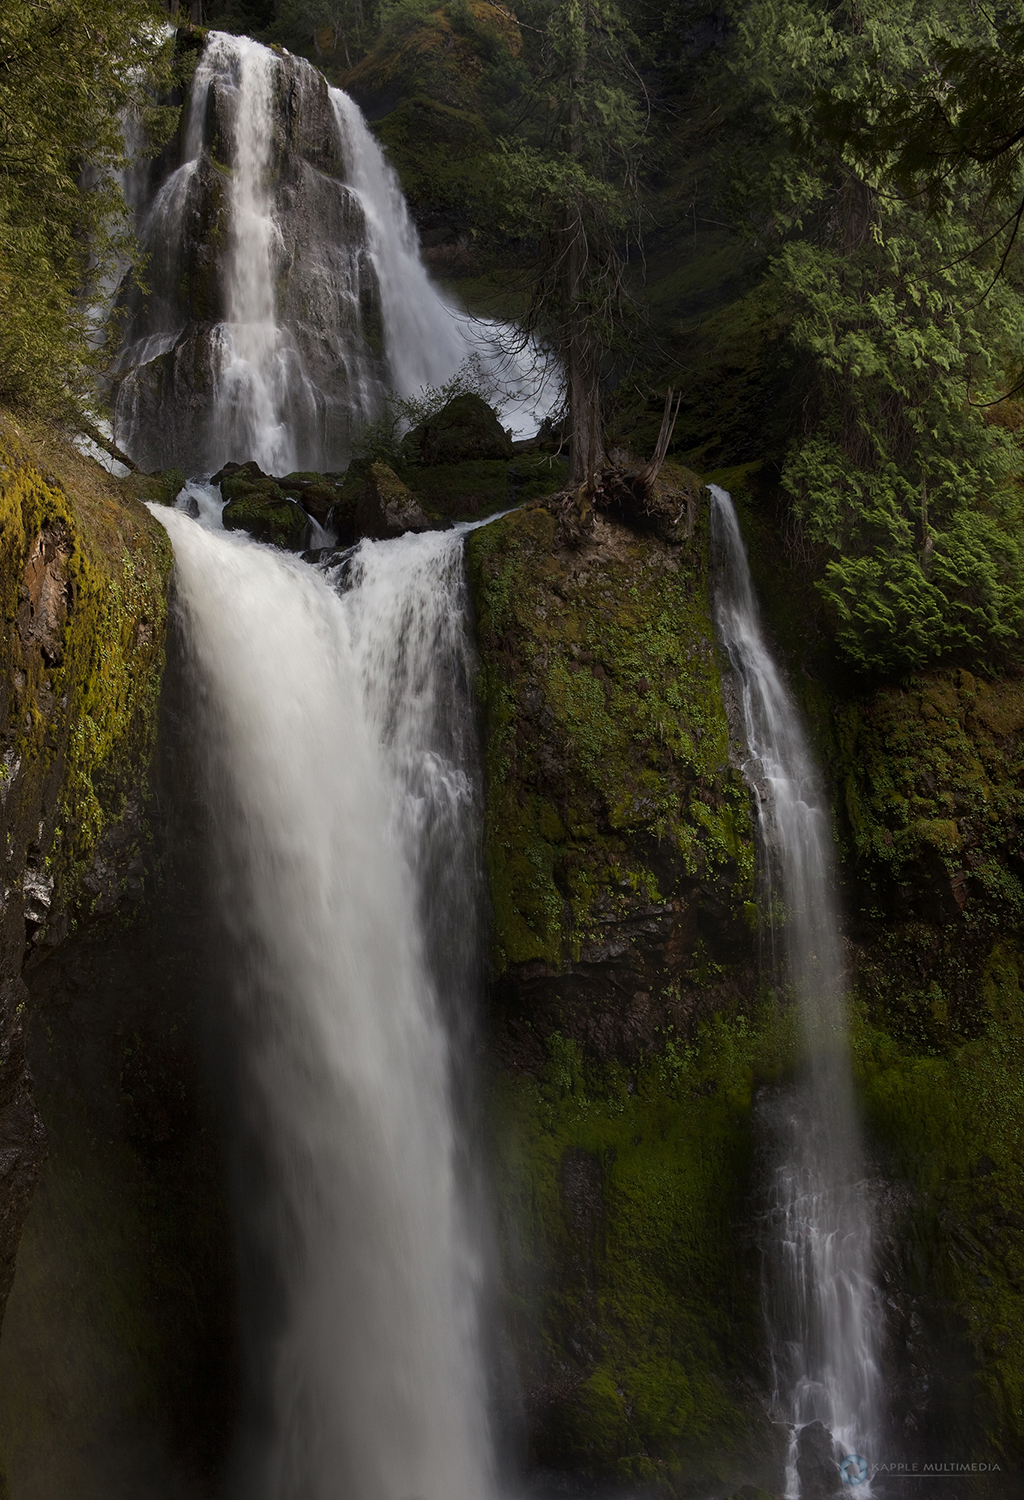 Falls Creek Falls in temperate rainforest, Gifford Pinchot National Forest, Washington, USA